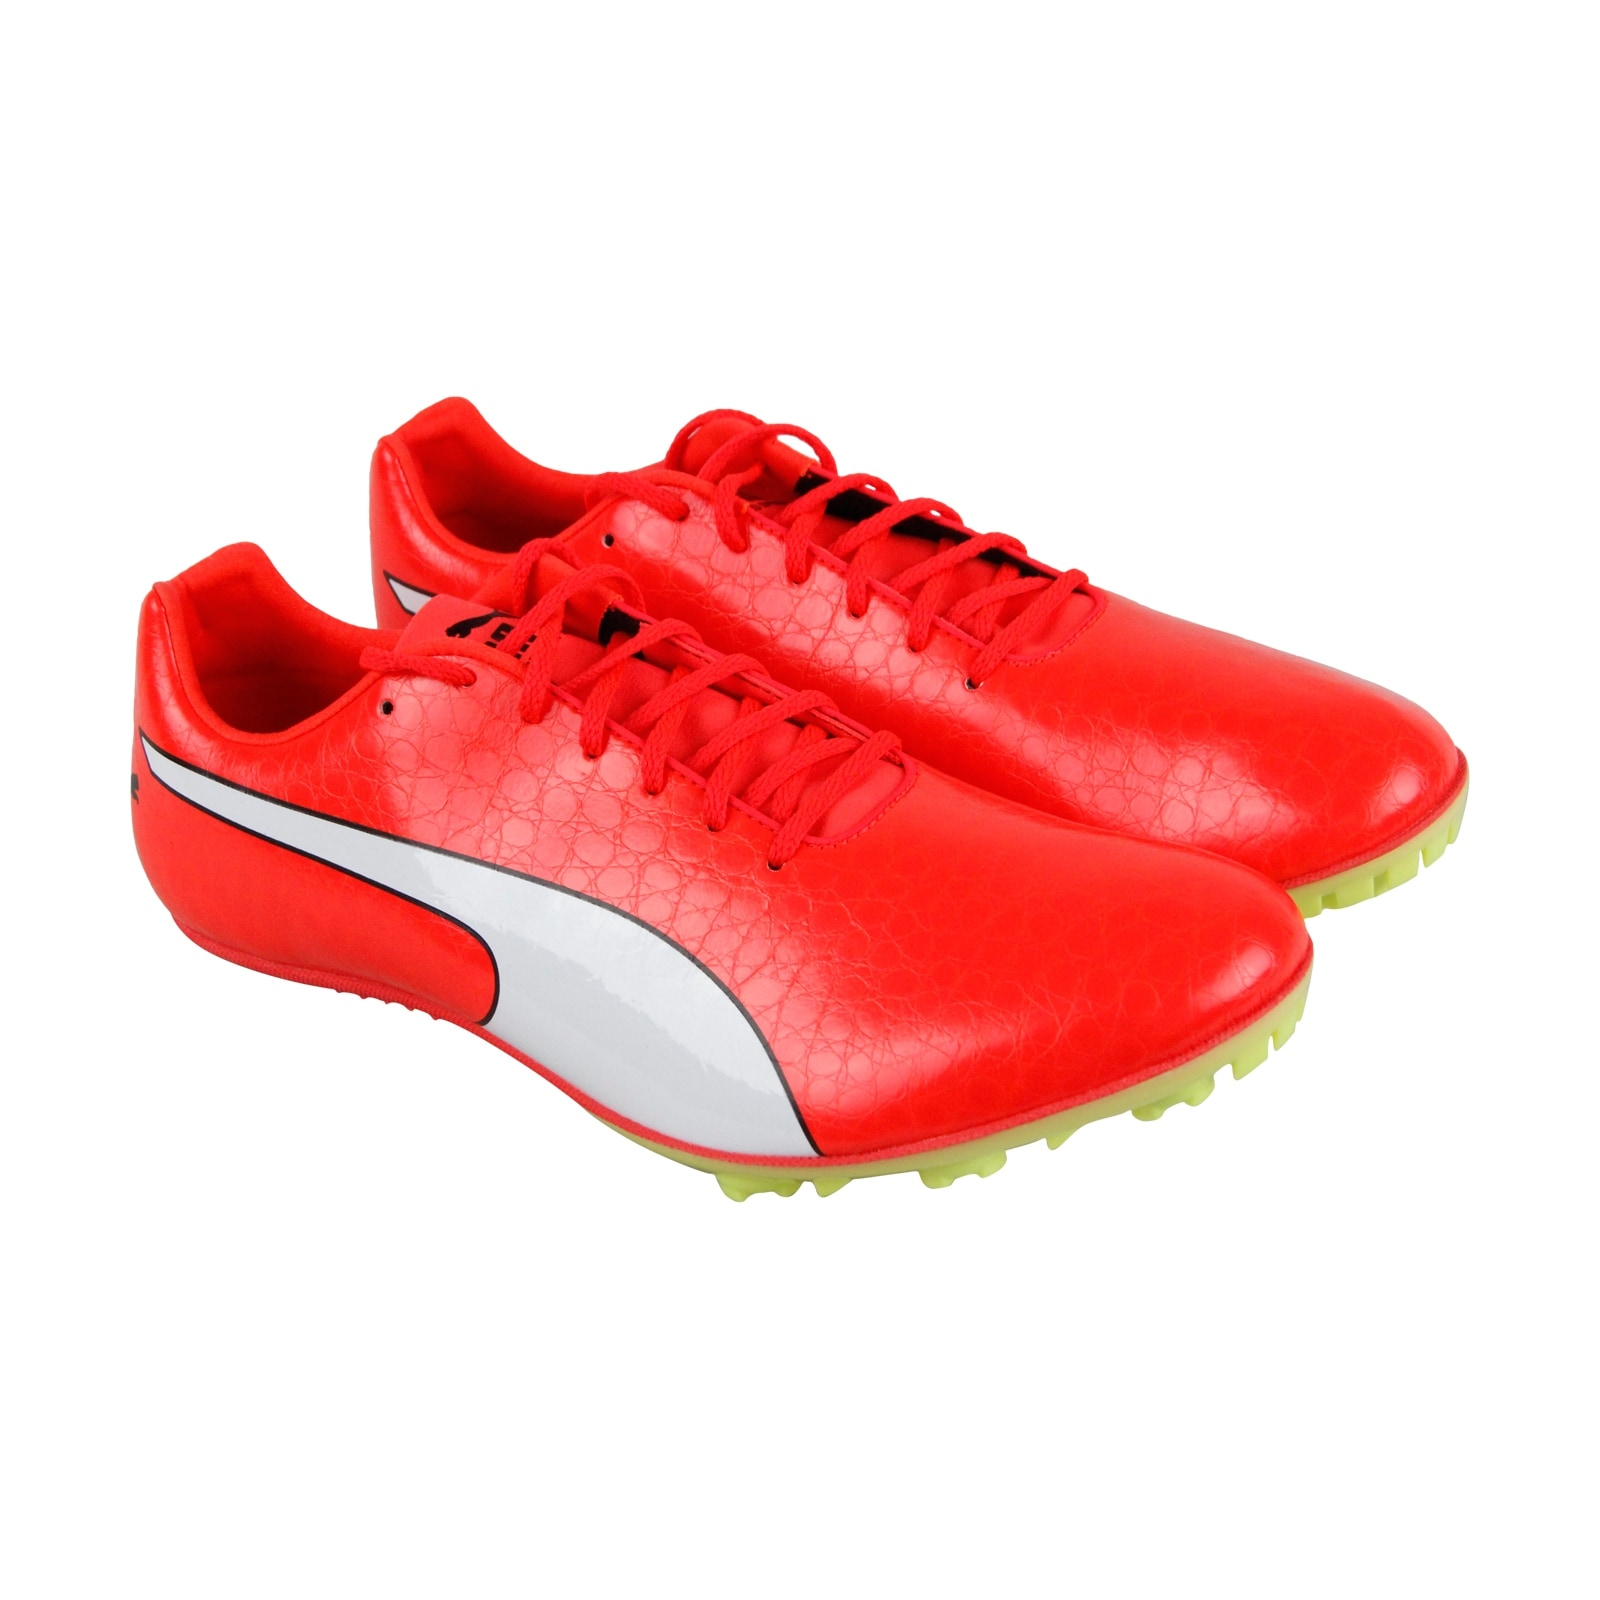 Puma Evospeed Sprint 8 Mens Red Leather Athletic Lace Up Running Shoes e03ba29f776f